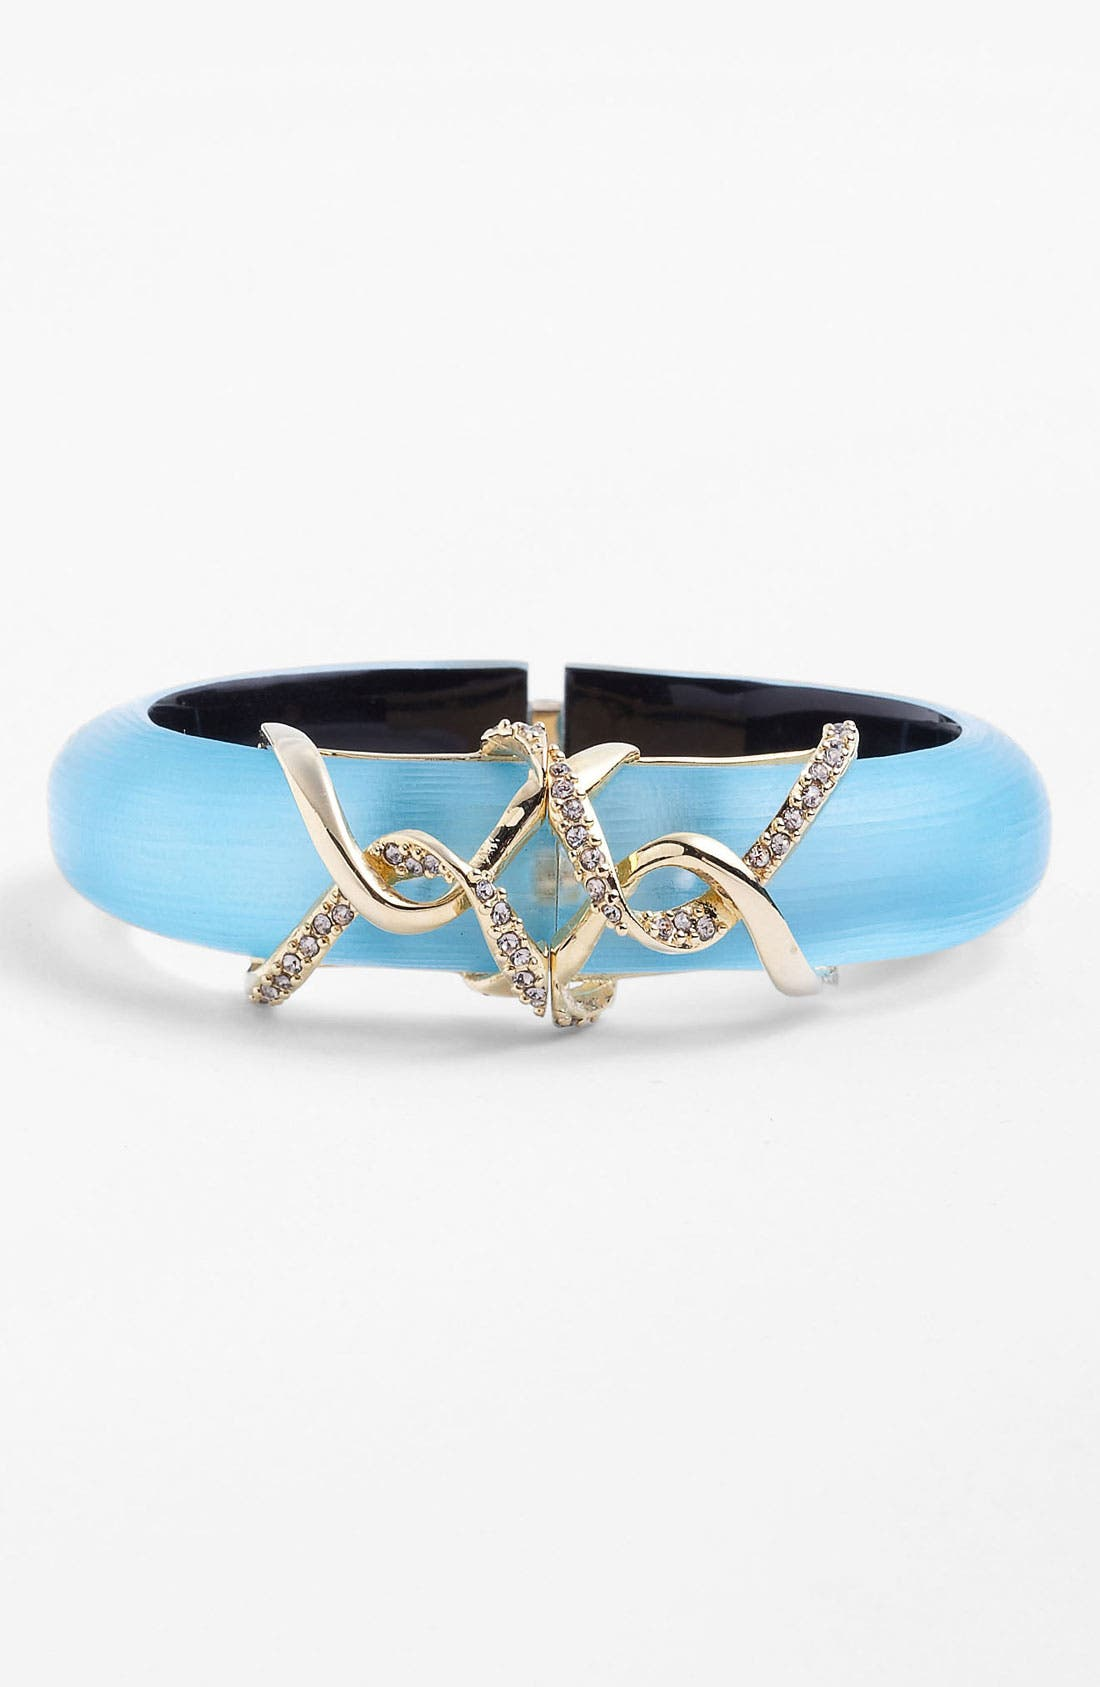 Alternate Image 1 Selected - Alexis Bittar 'Lucite® - Mod' Wrap Bracelet (Nordstrom Exclusive)